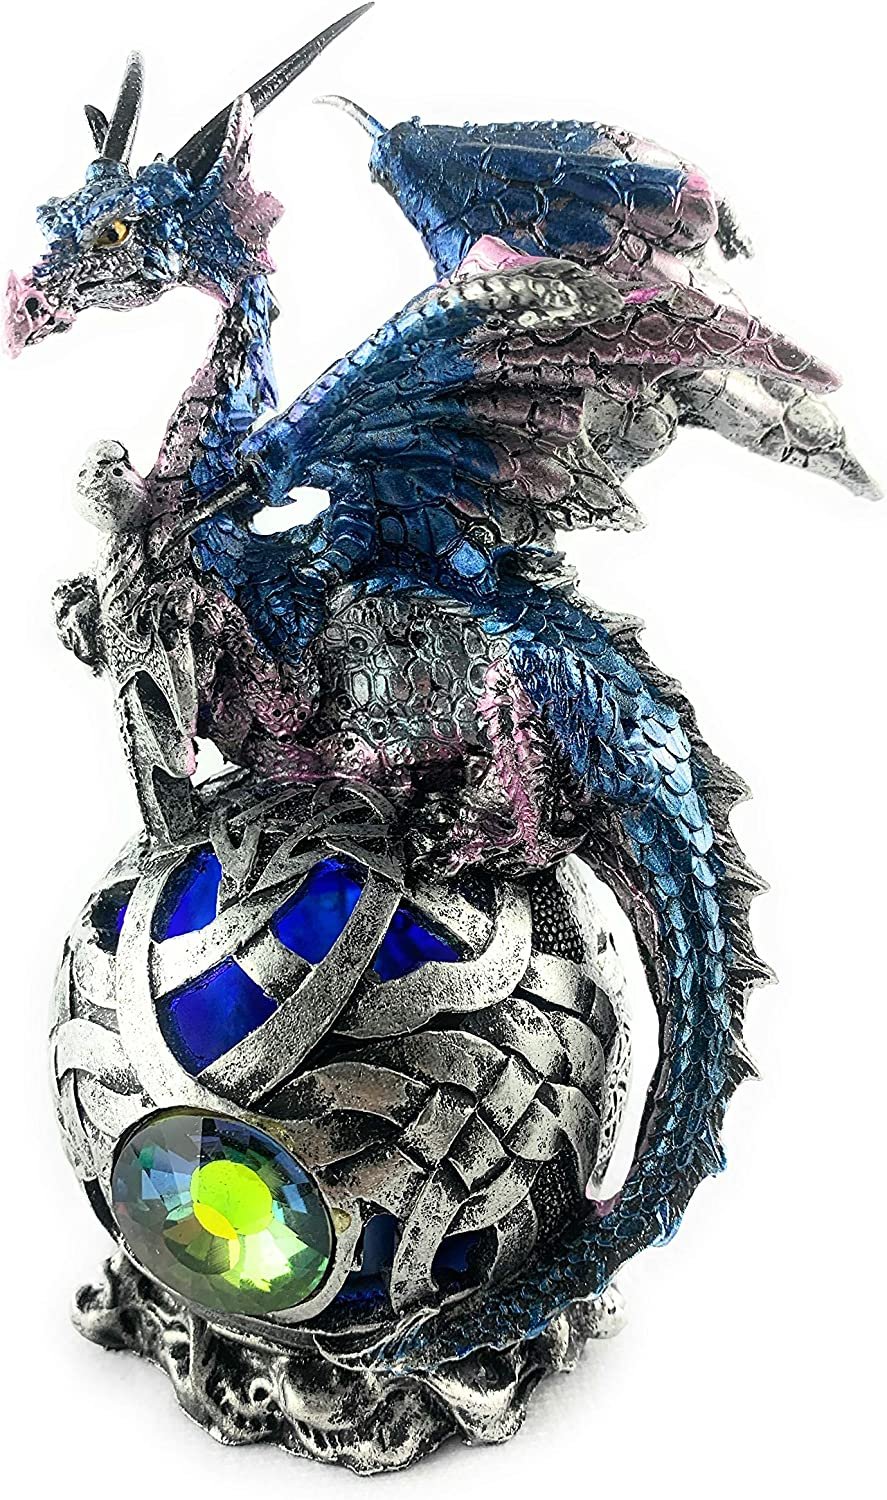 Aint it Nice Dragon Figurine On Light Up LED Orb Collectible Dragon Statue Décor, 6 X 3.5 X 3 inches (Batteries Included) (Blue)